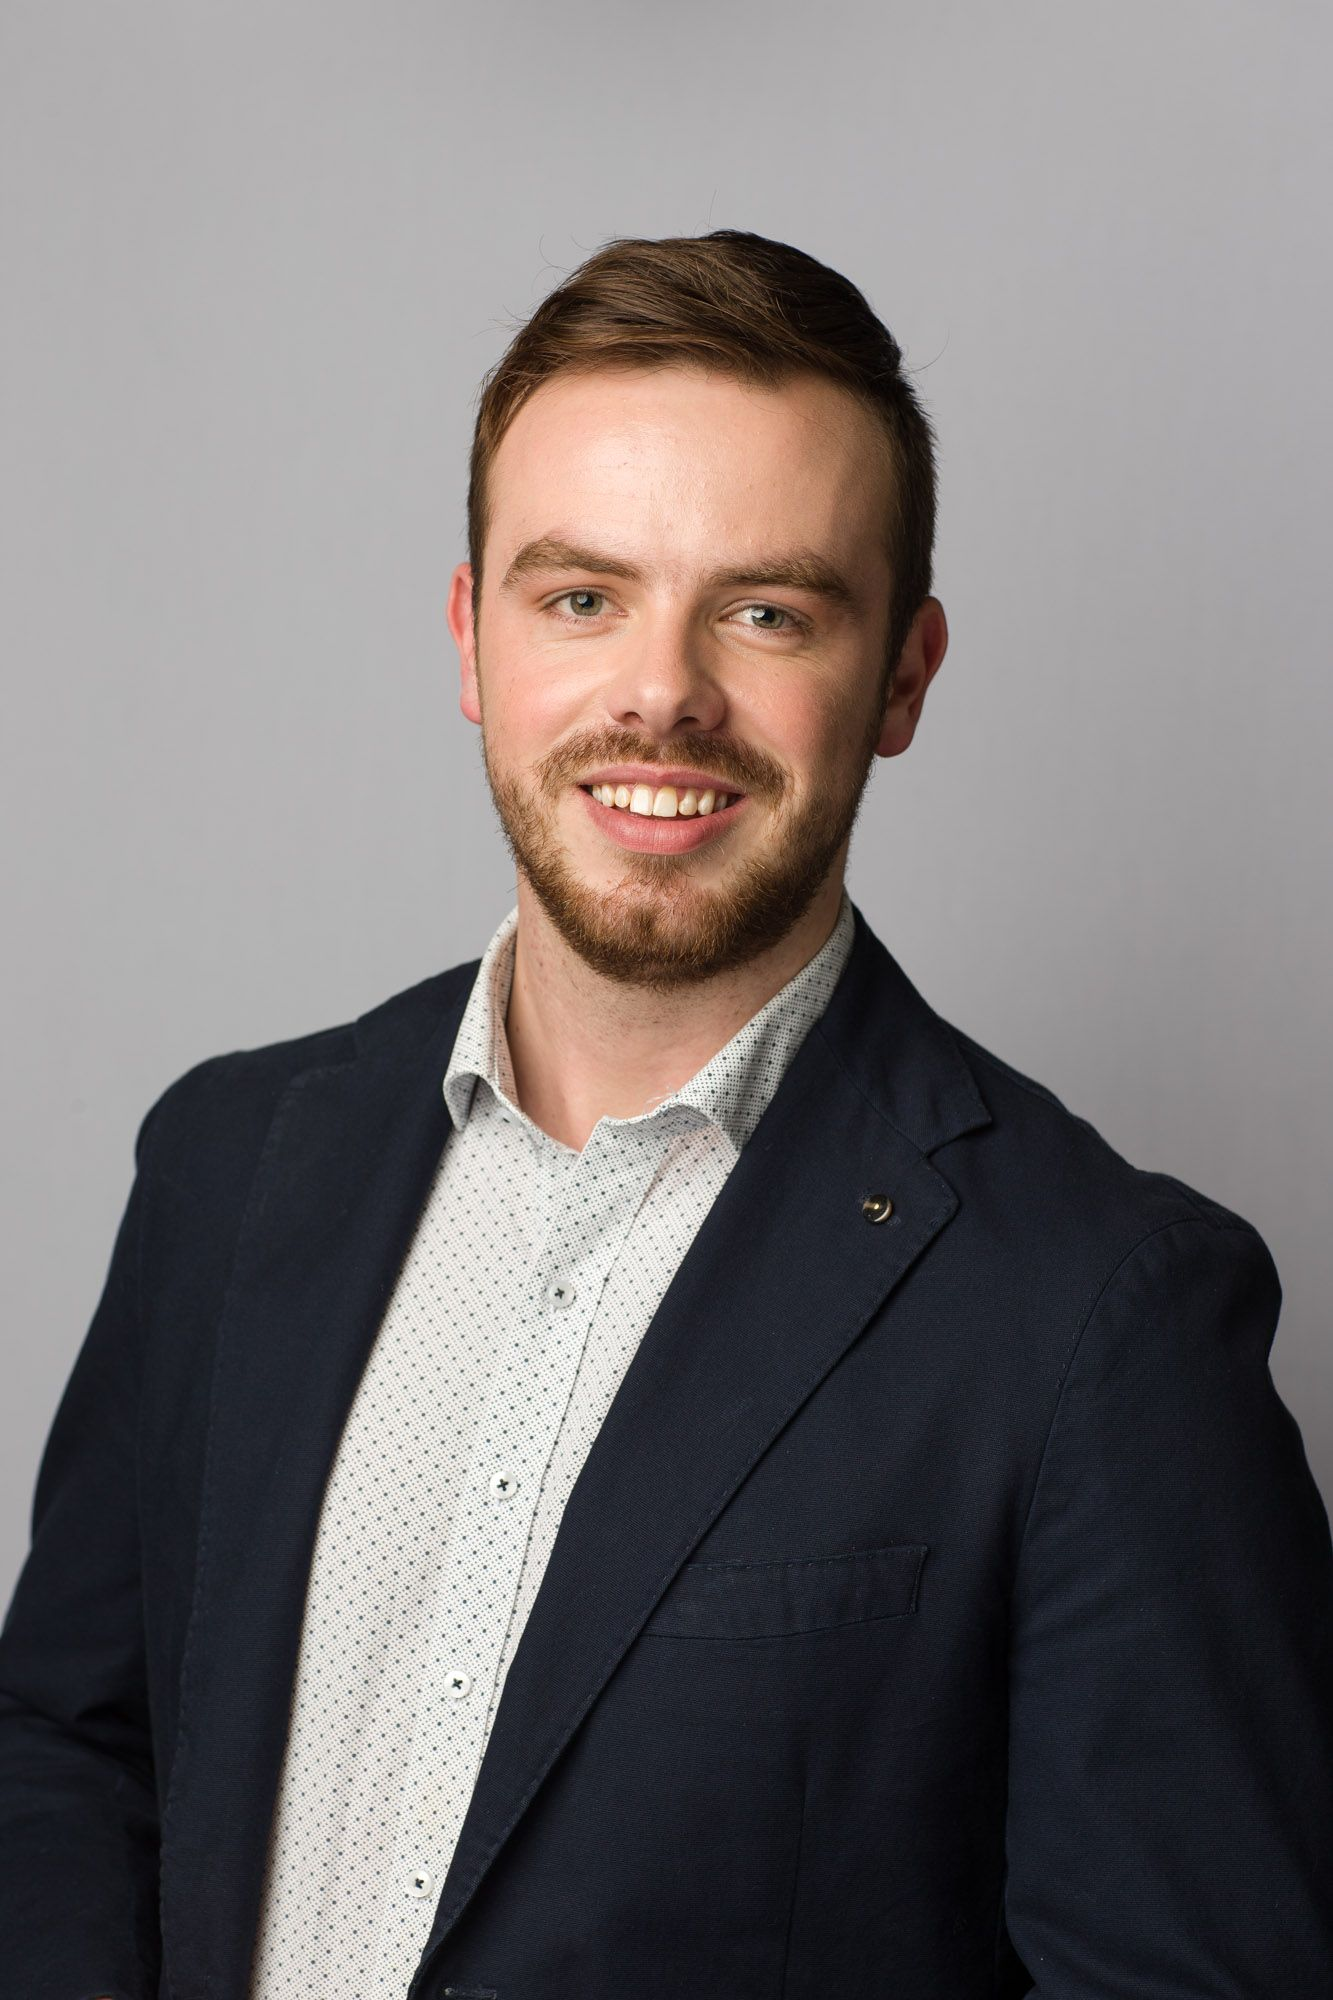 Swinburne Professional Leadership Team Mitchell Bailes